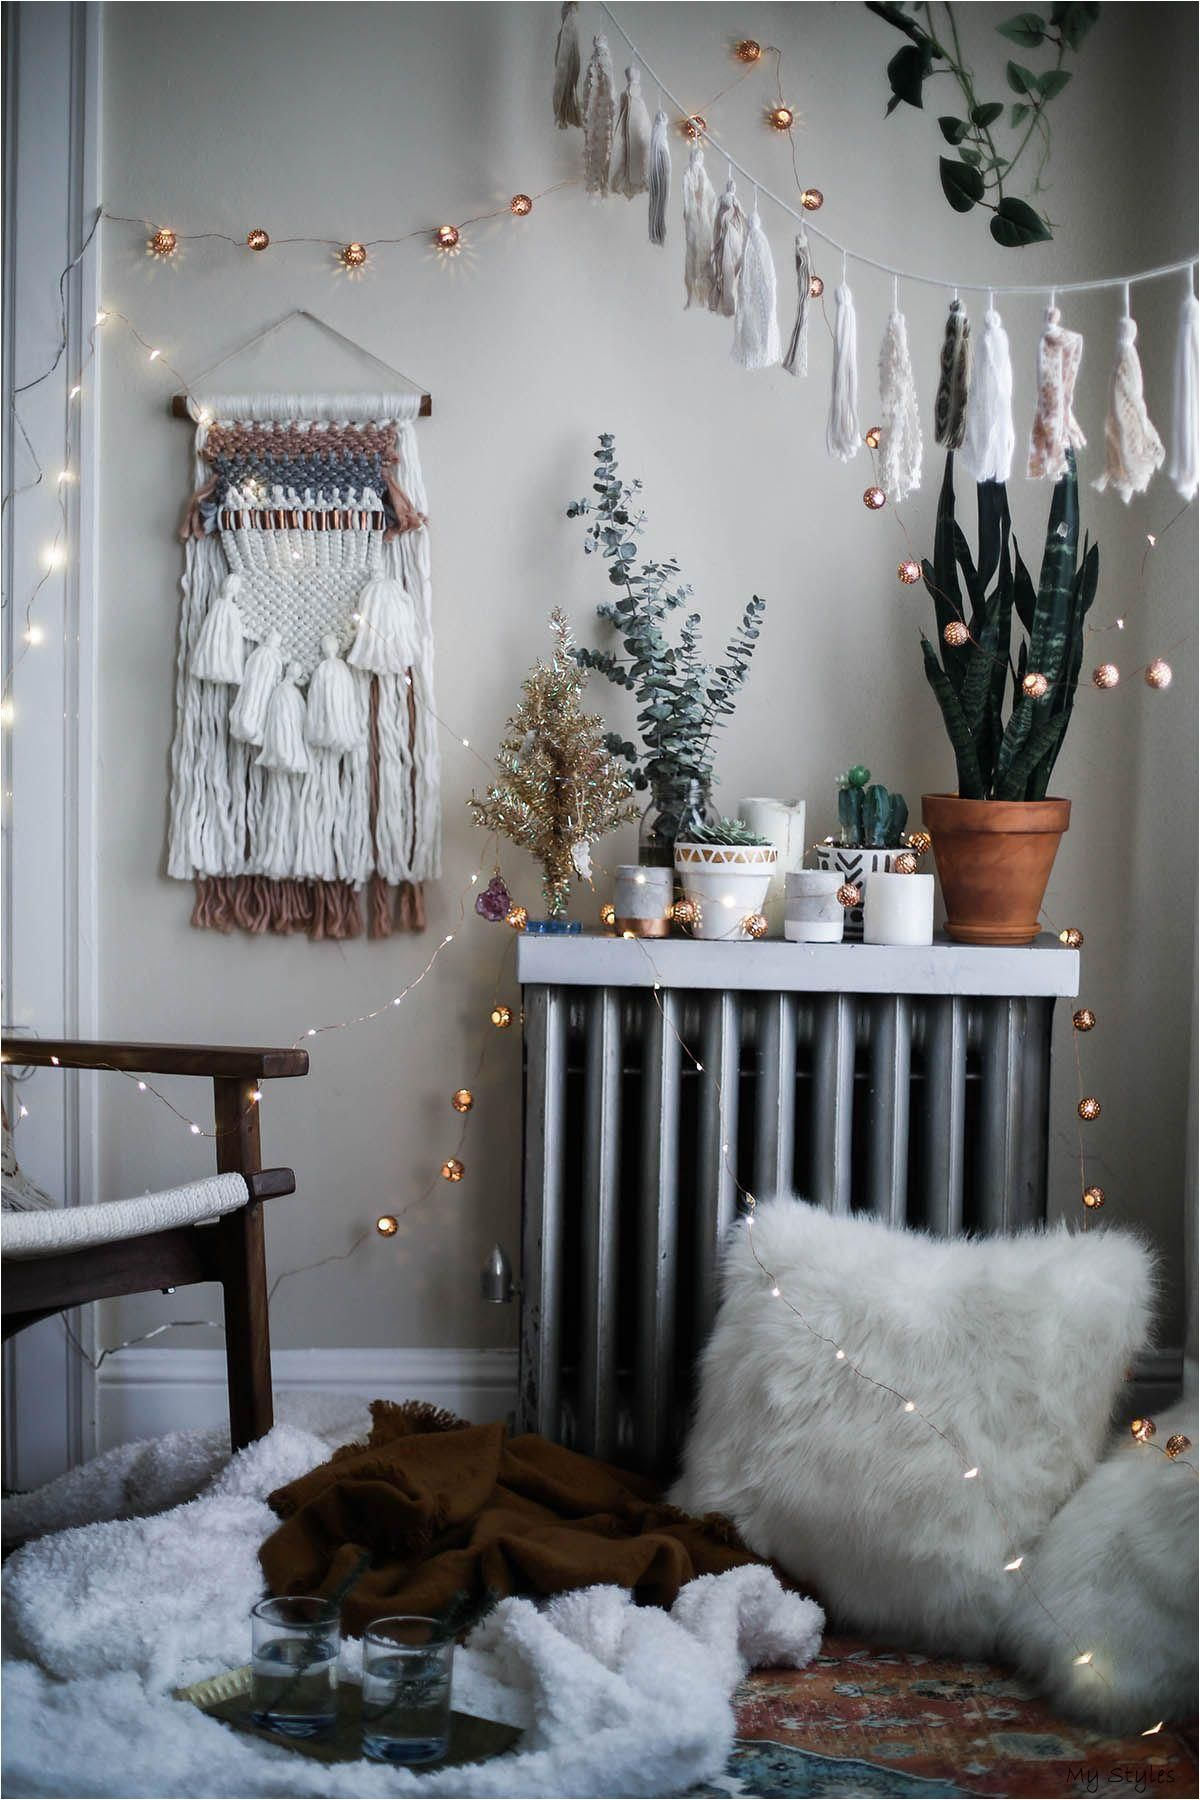 Nov 20, 20   When it comes to decorating for the holidays, I'm ...